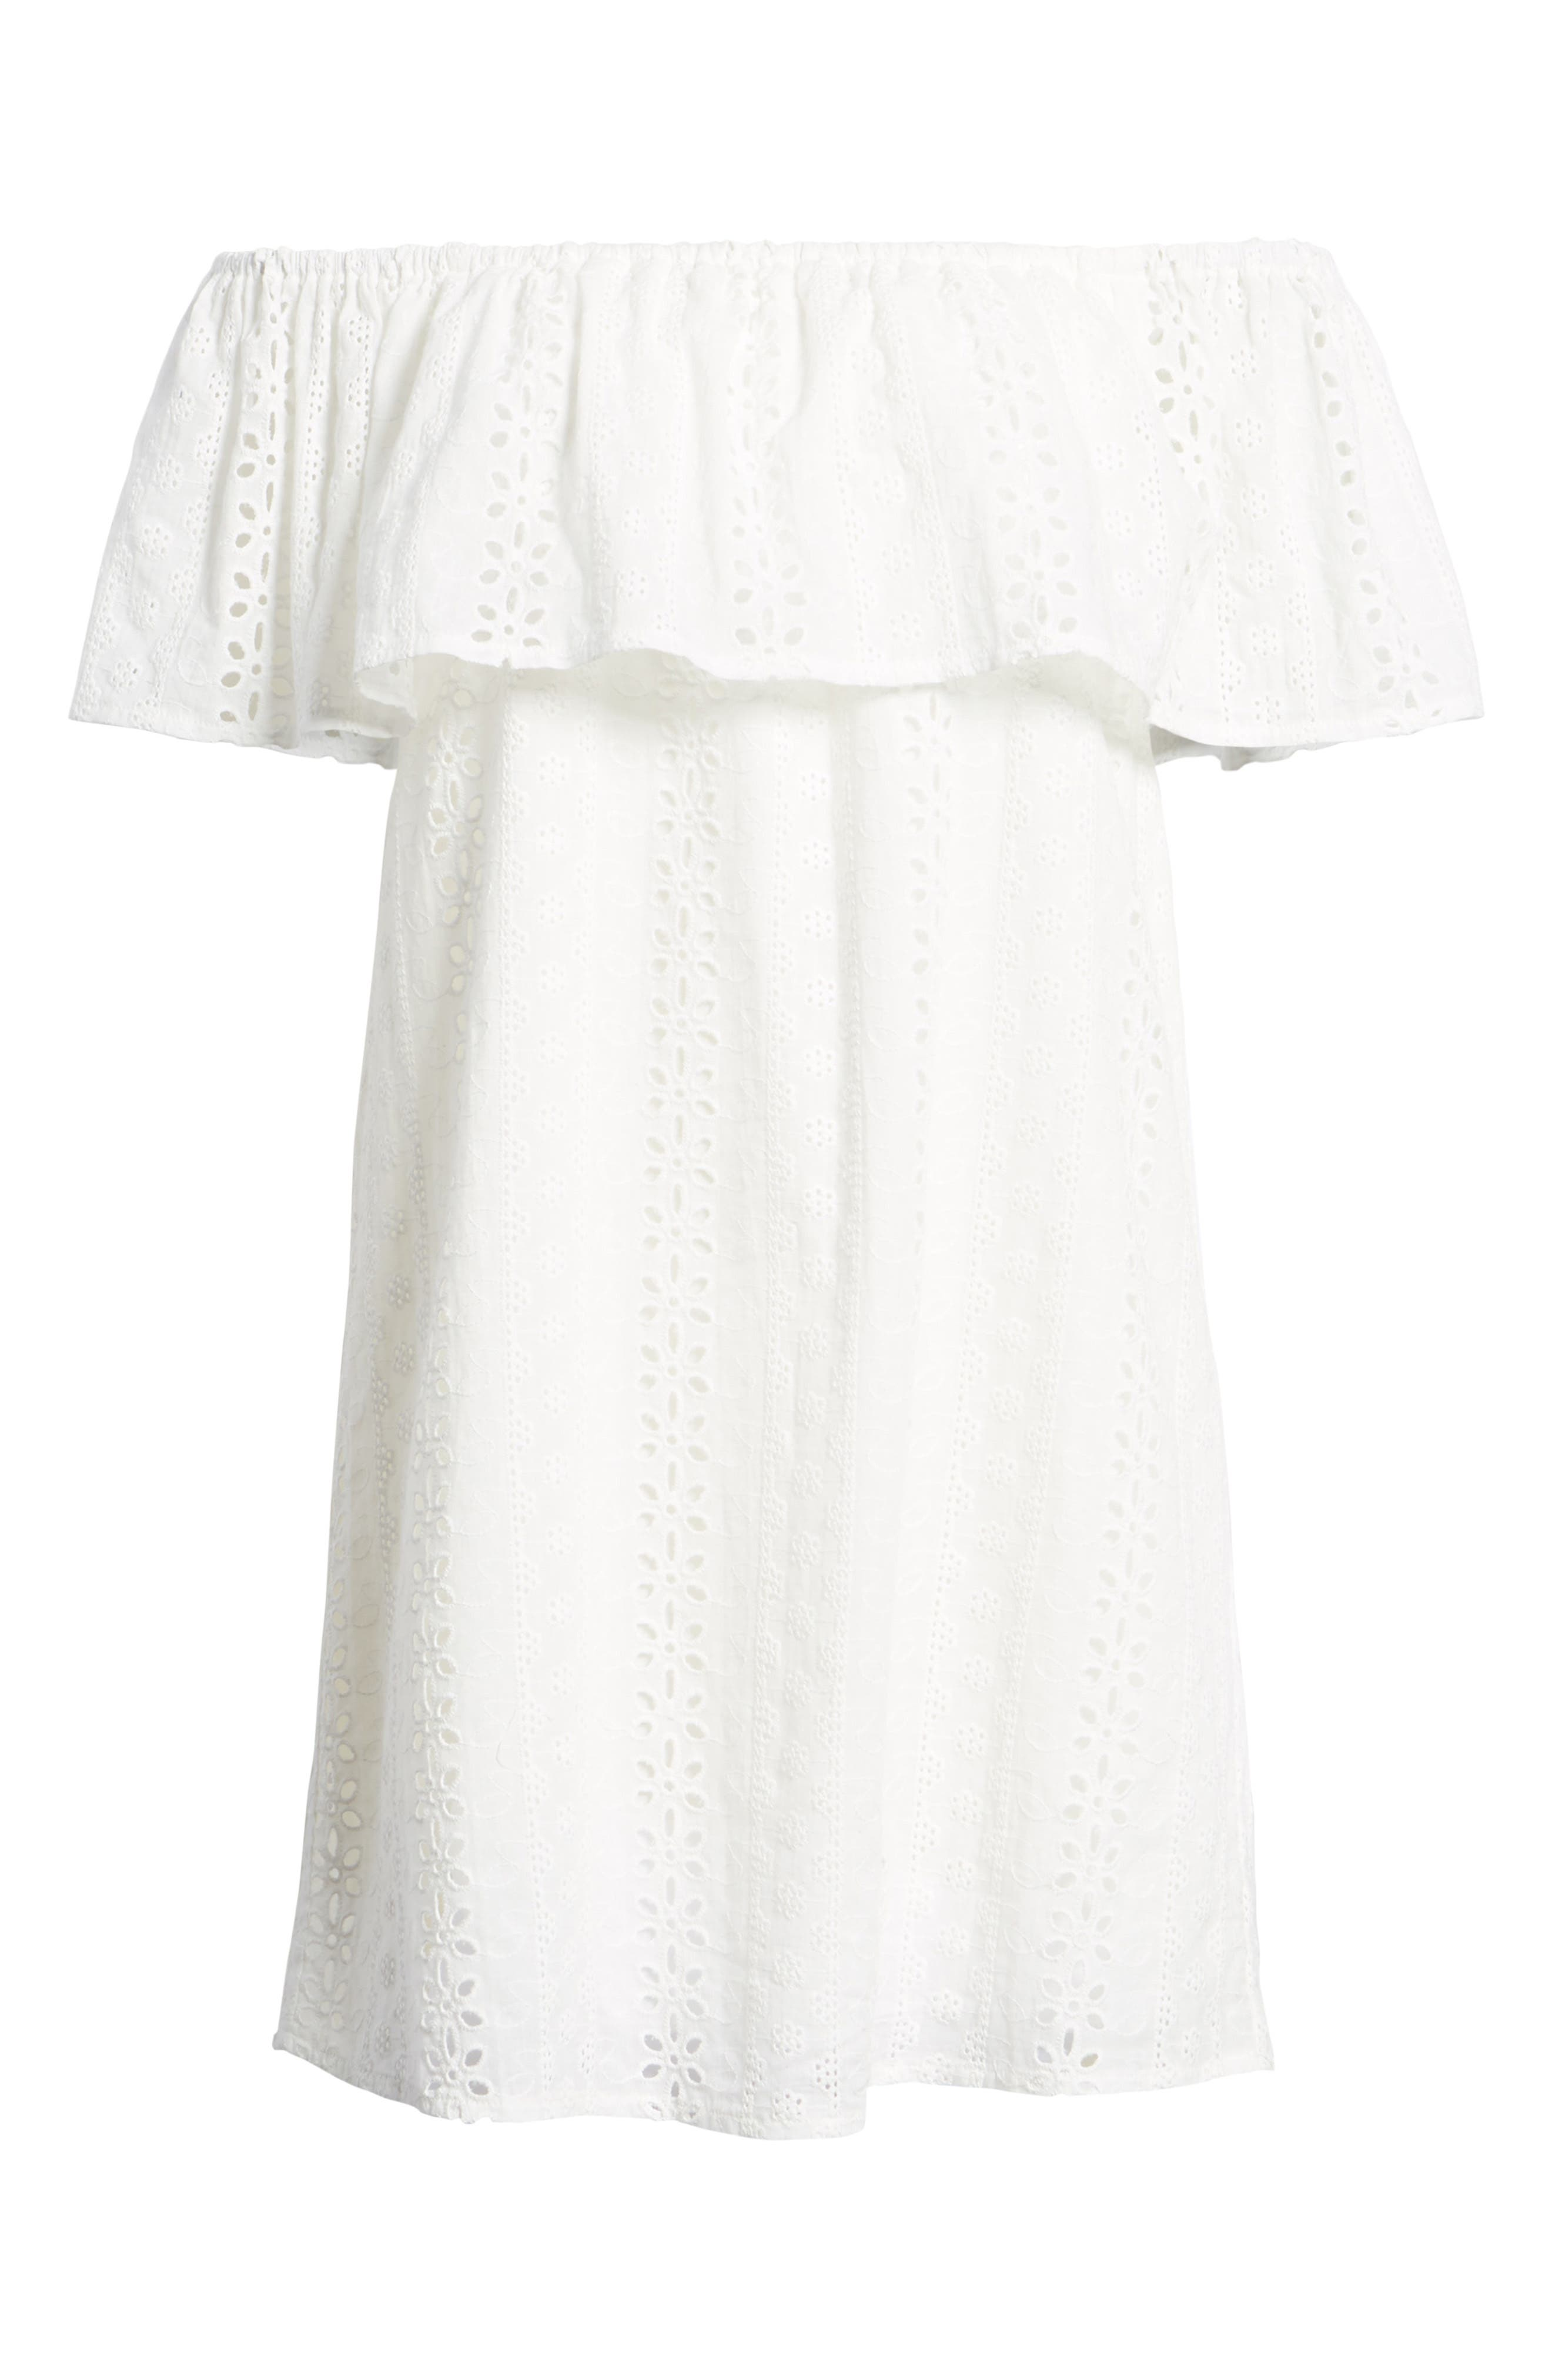 Bishop + Young Eyelet Ruffle Off the Shoulder Dress,                             Alternate thumbnail 7, color,                             White